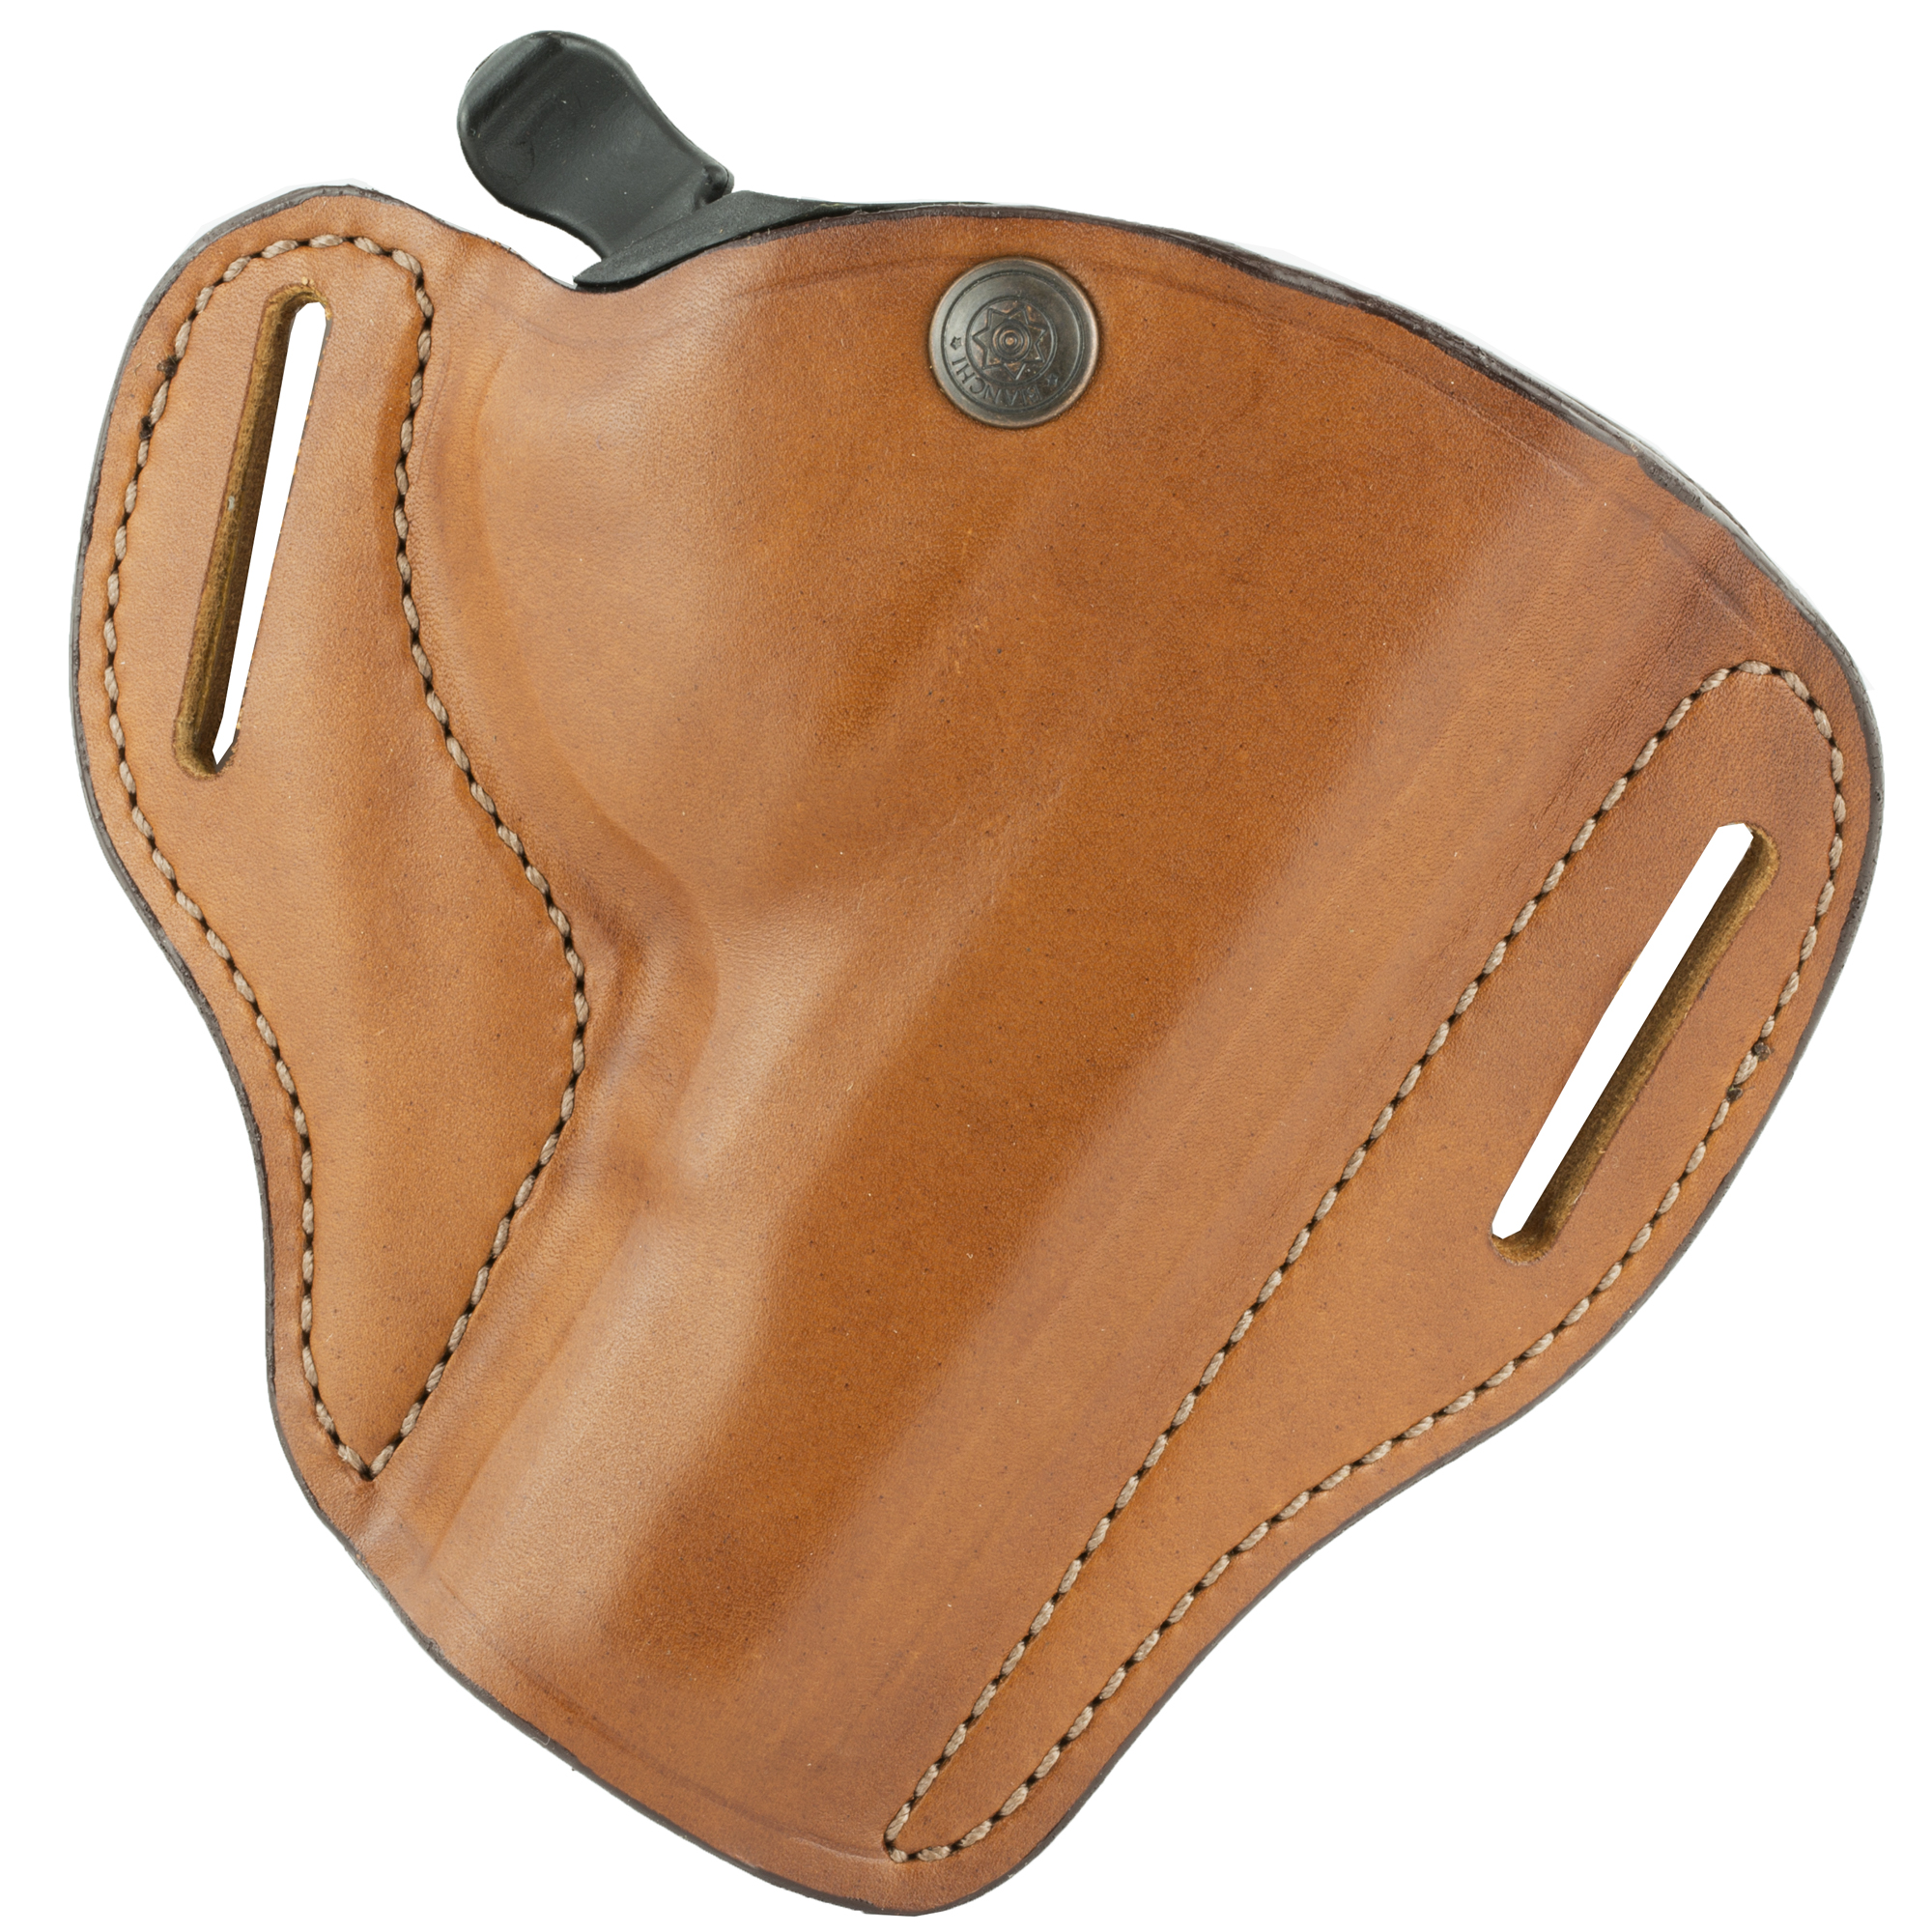 """The 82 offers the speed of an open top holster with the security of Auto Retention"""" using the FingerLok retention mechanism that secures the pistol by the trigger guard when holstered. To draw"""" the middle finger sweeps the release lever allowing the pistol to be drawn in a straight out movement. Full grain cowhide with dual belt slots to keep close to the body. Fits belts up to 1.75 in. (45 mm) in width."""